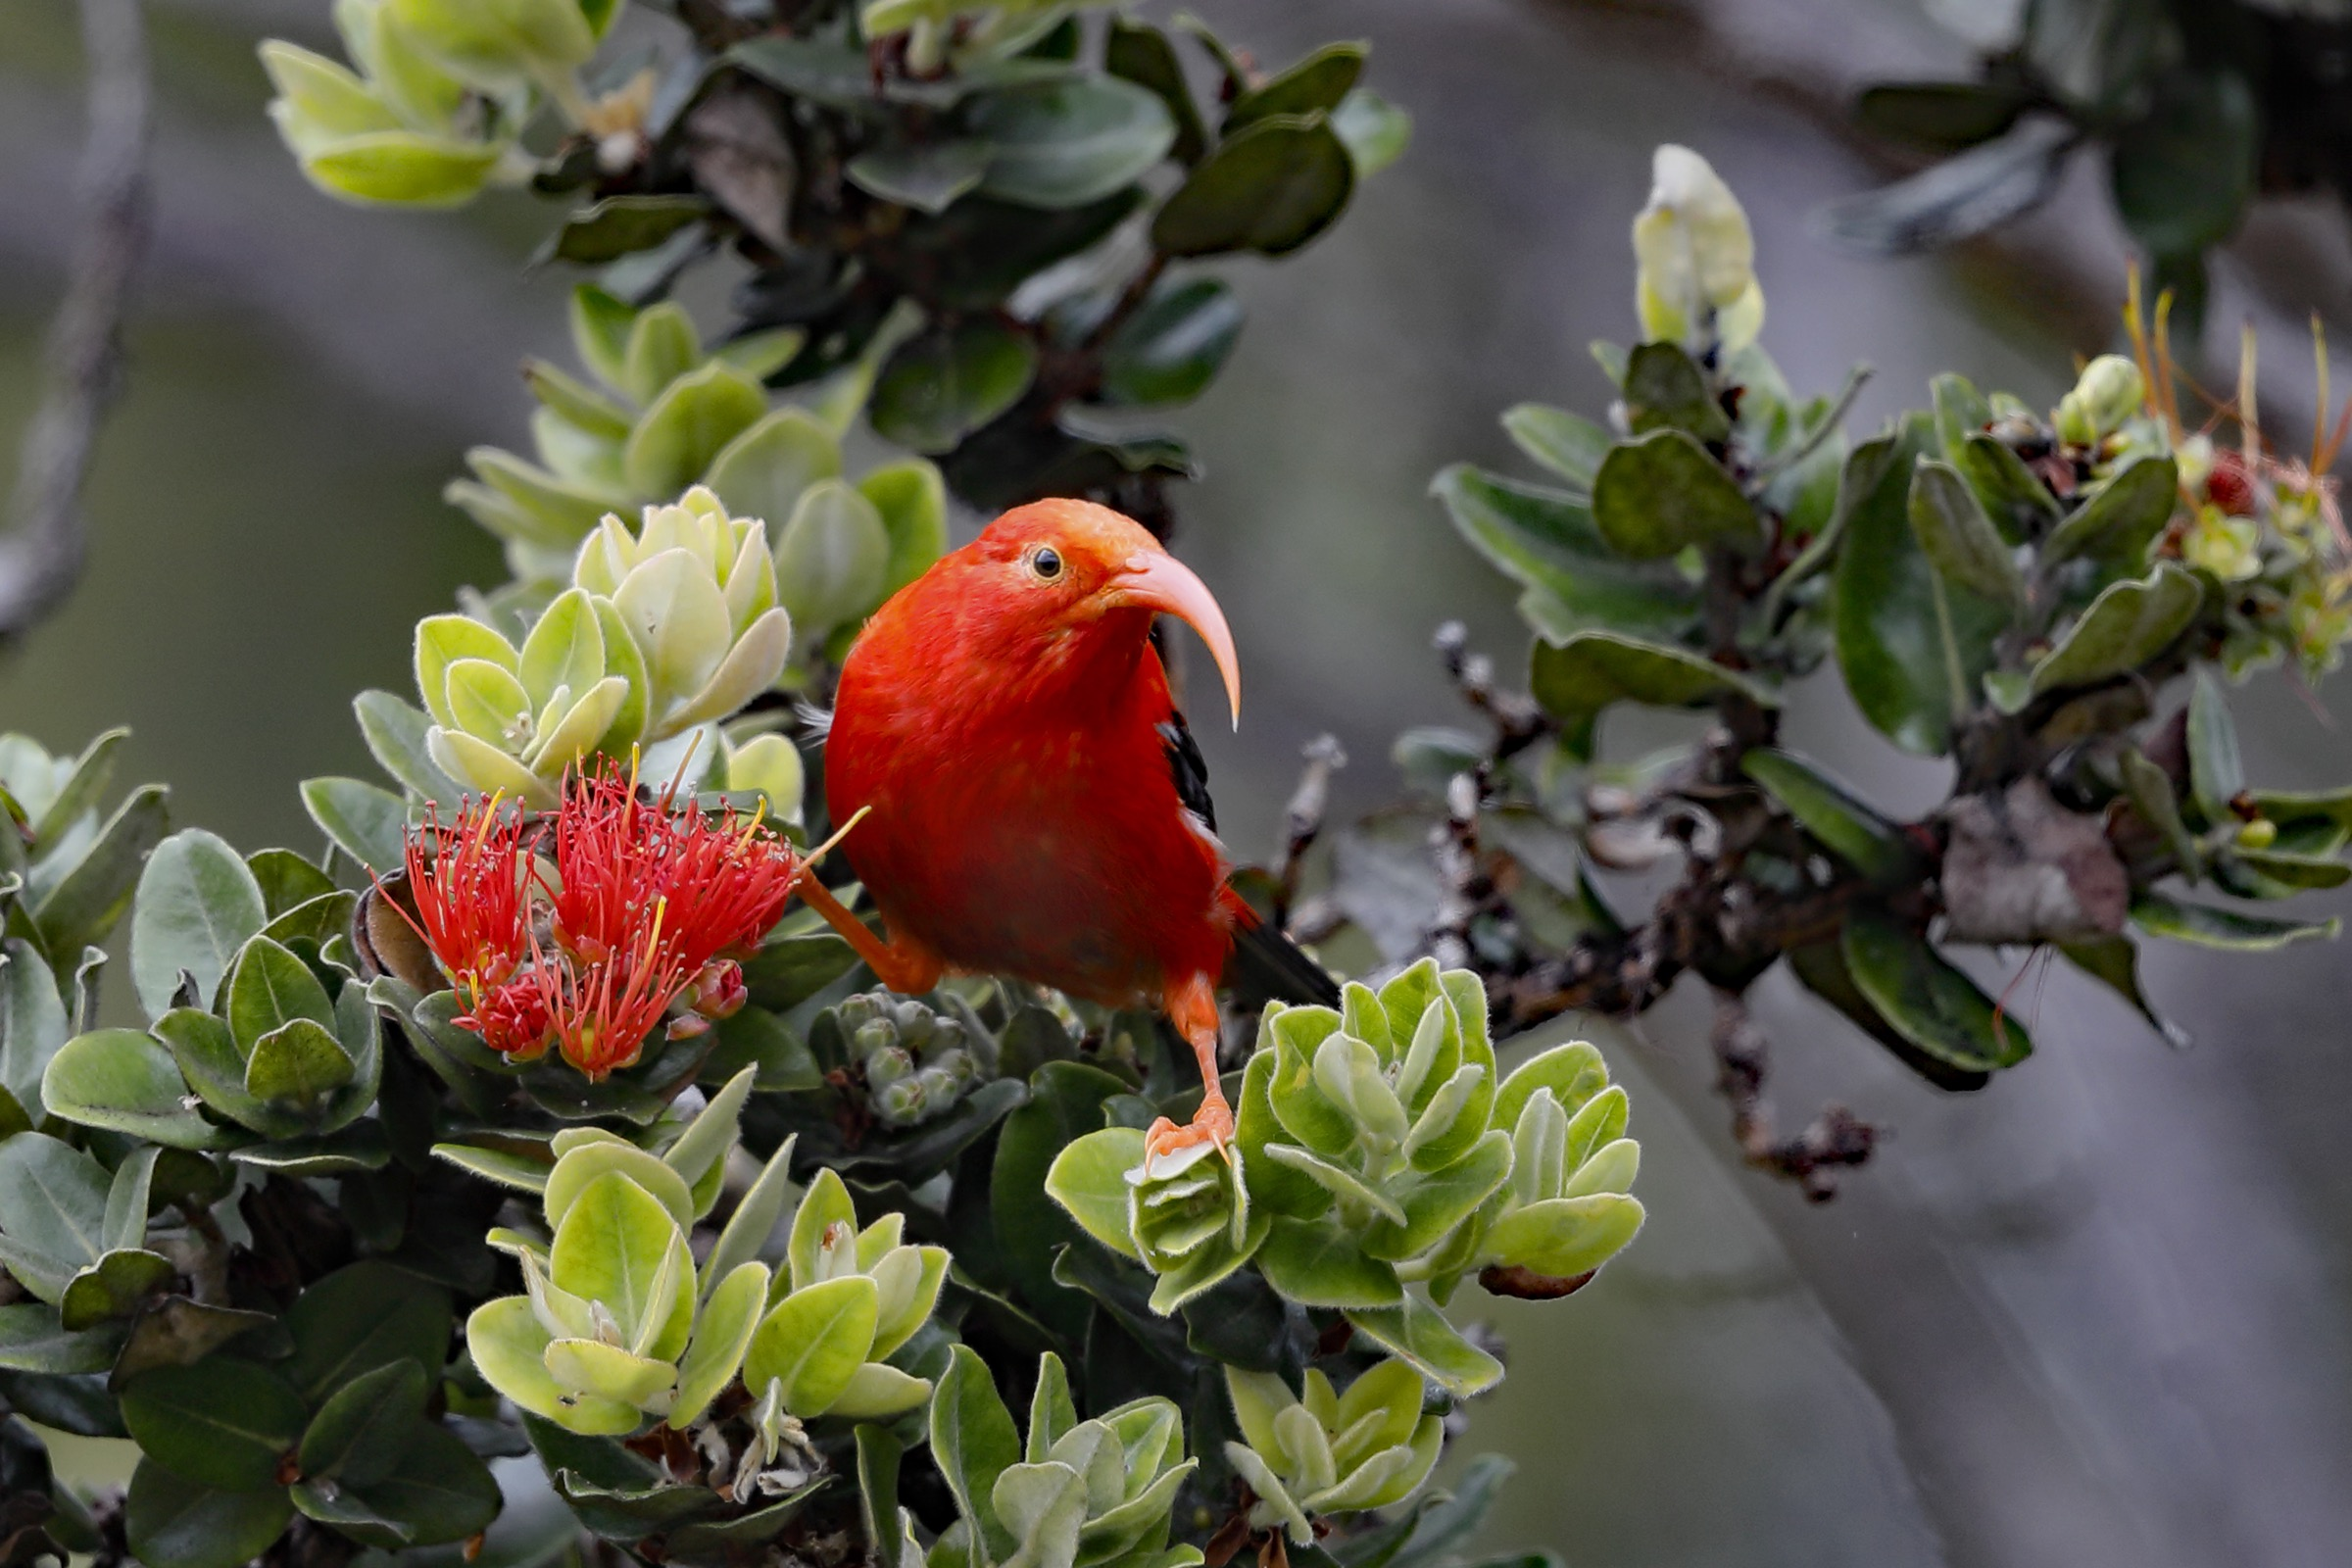 The ʻIʻiwi (Drepanis coccinea) is one of several species of Hawaiian honeycreepers found in the Kīpahulu Biological Reserve. The species is classified as Vulnerable by the IUCN. Researchers have recently documented evidence of hybridization between ʻIʻiwi and 'Apapane. Photograph by Jack Jeffrey